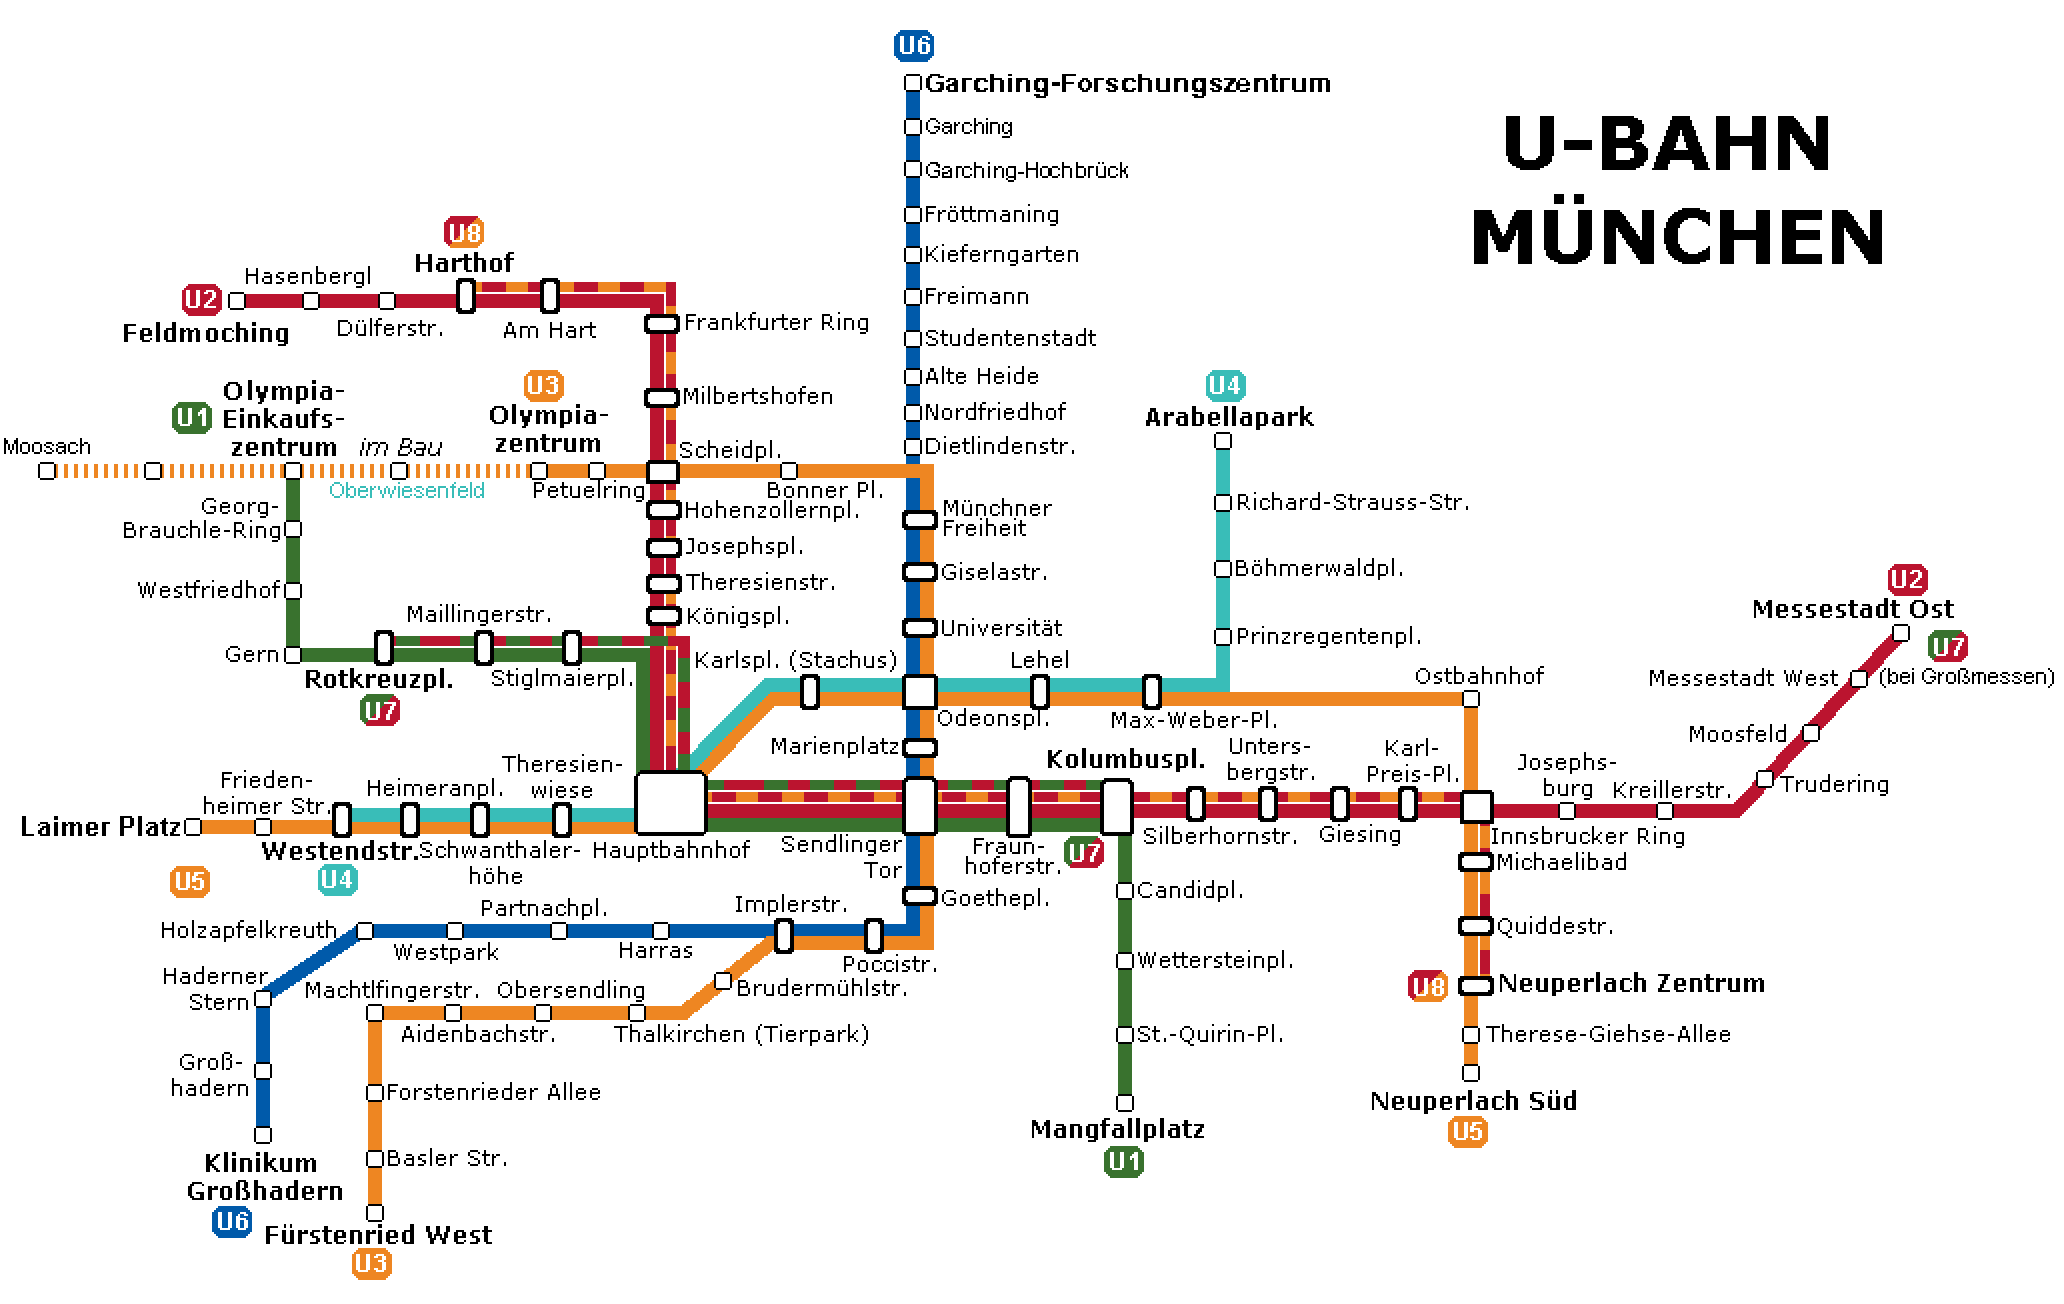 Munich Subway Map.Munich Subway Map Munich U Bahn Mapa Metro